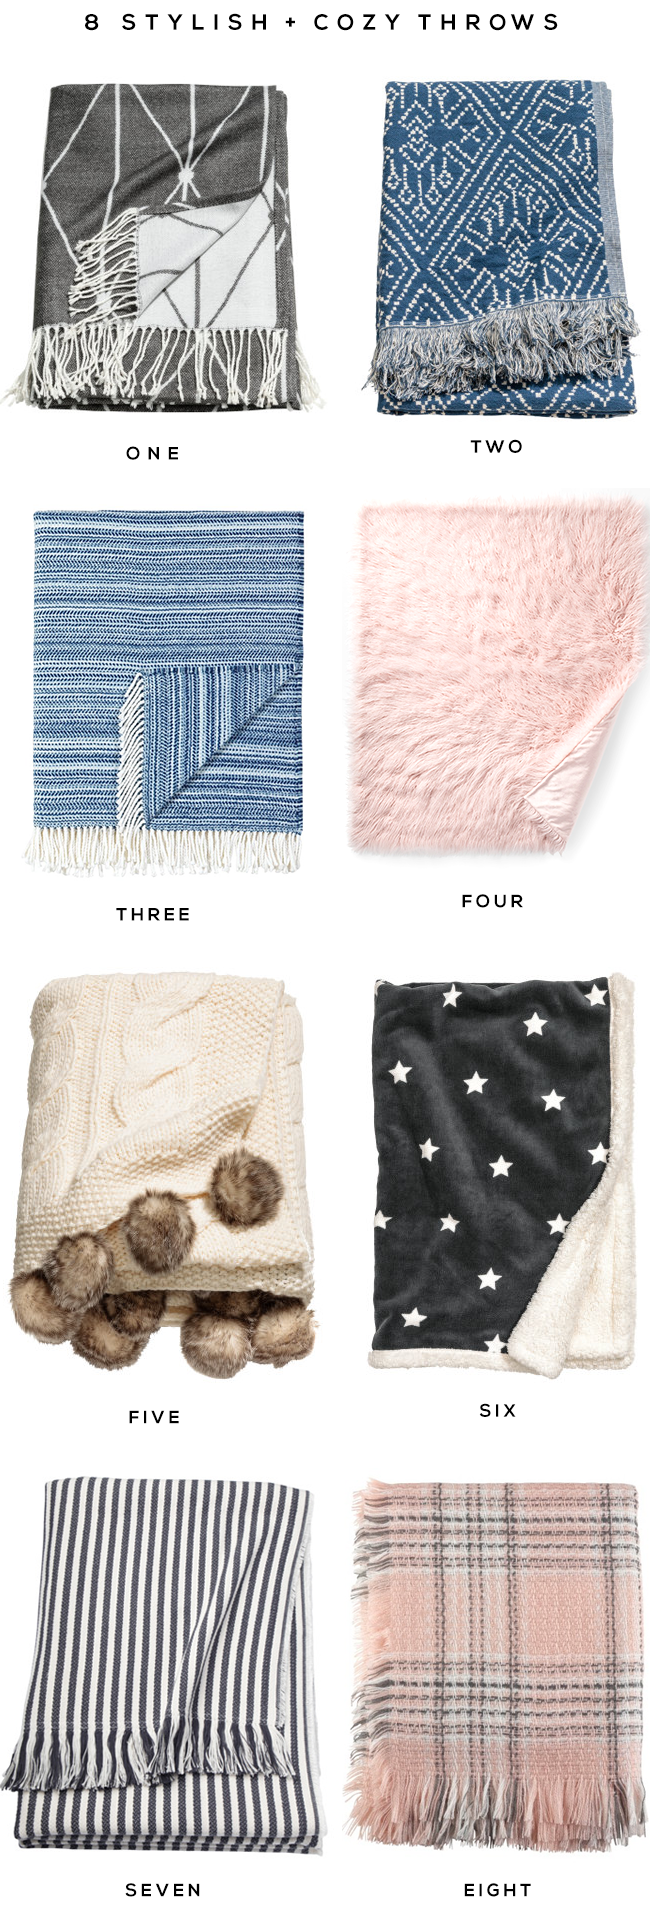 Stylish and Cozy Throw Blankets for Fall and Winter